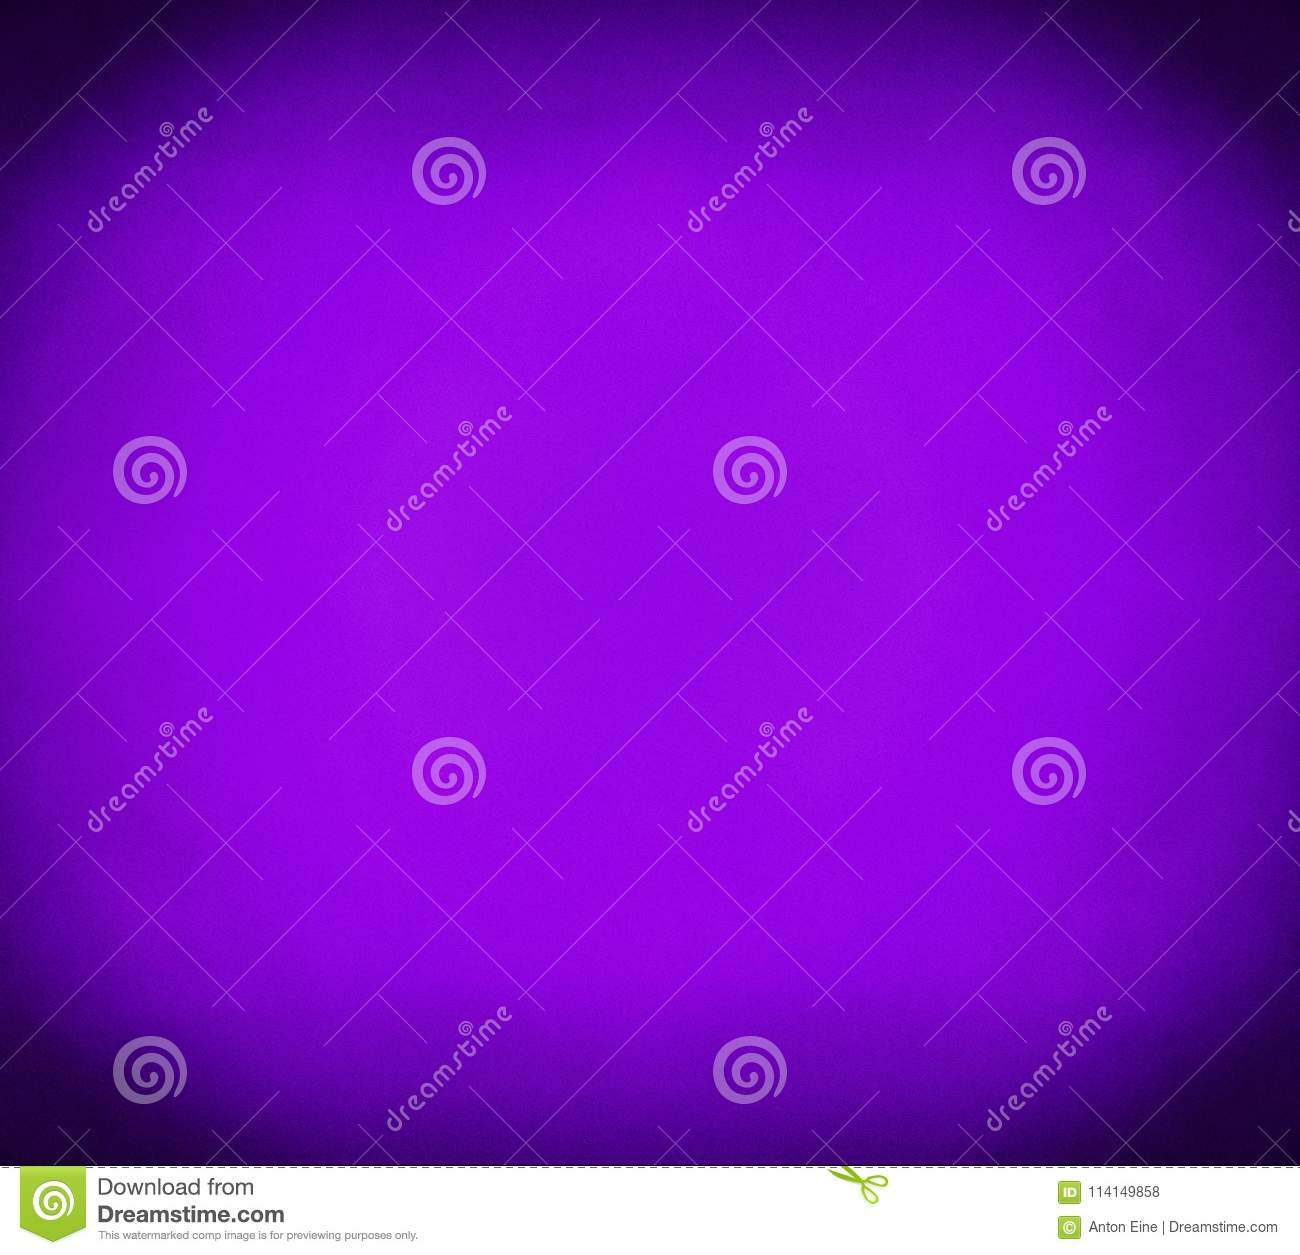 Abstract purple and violet background with noise